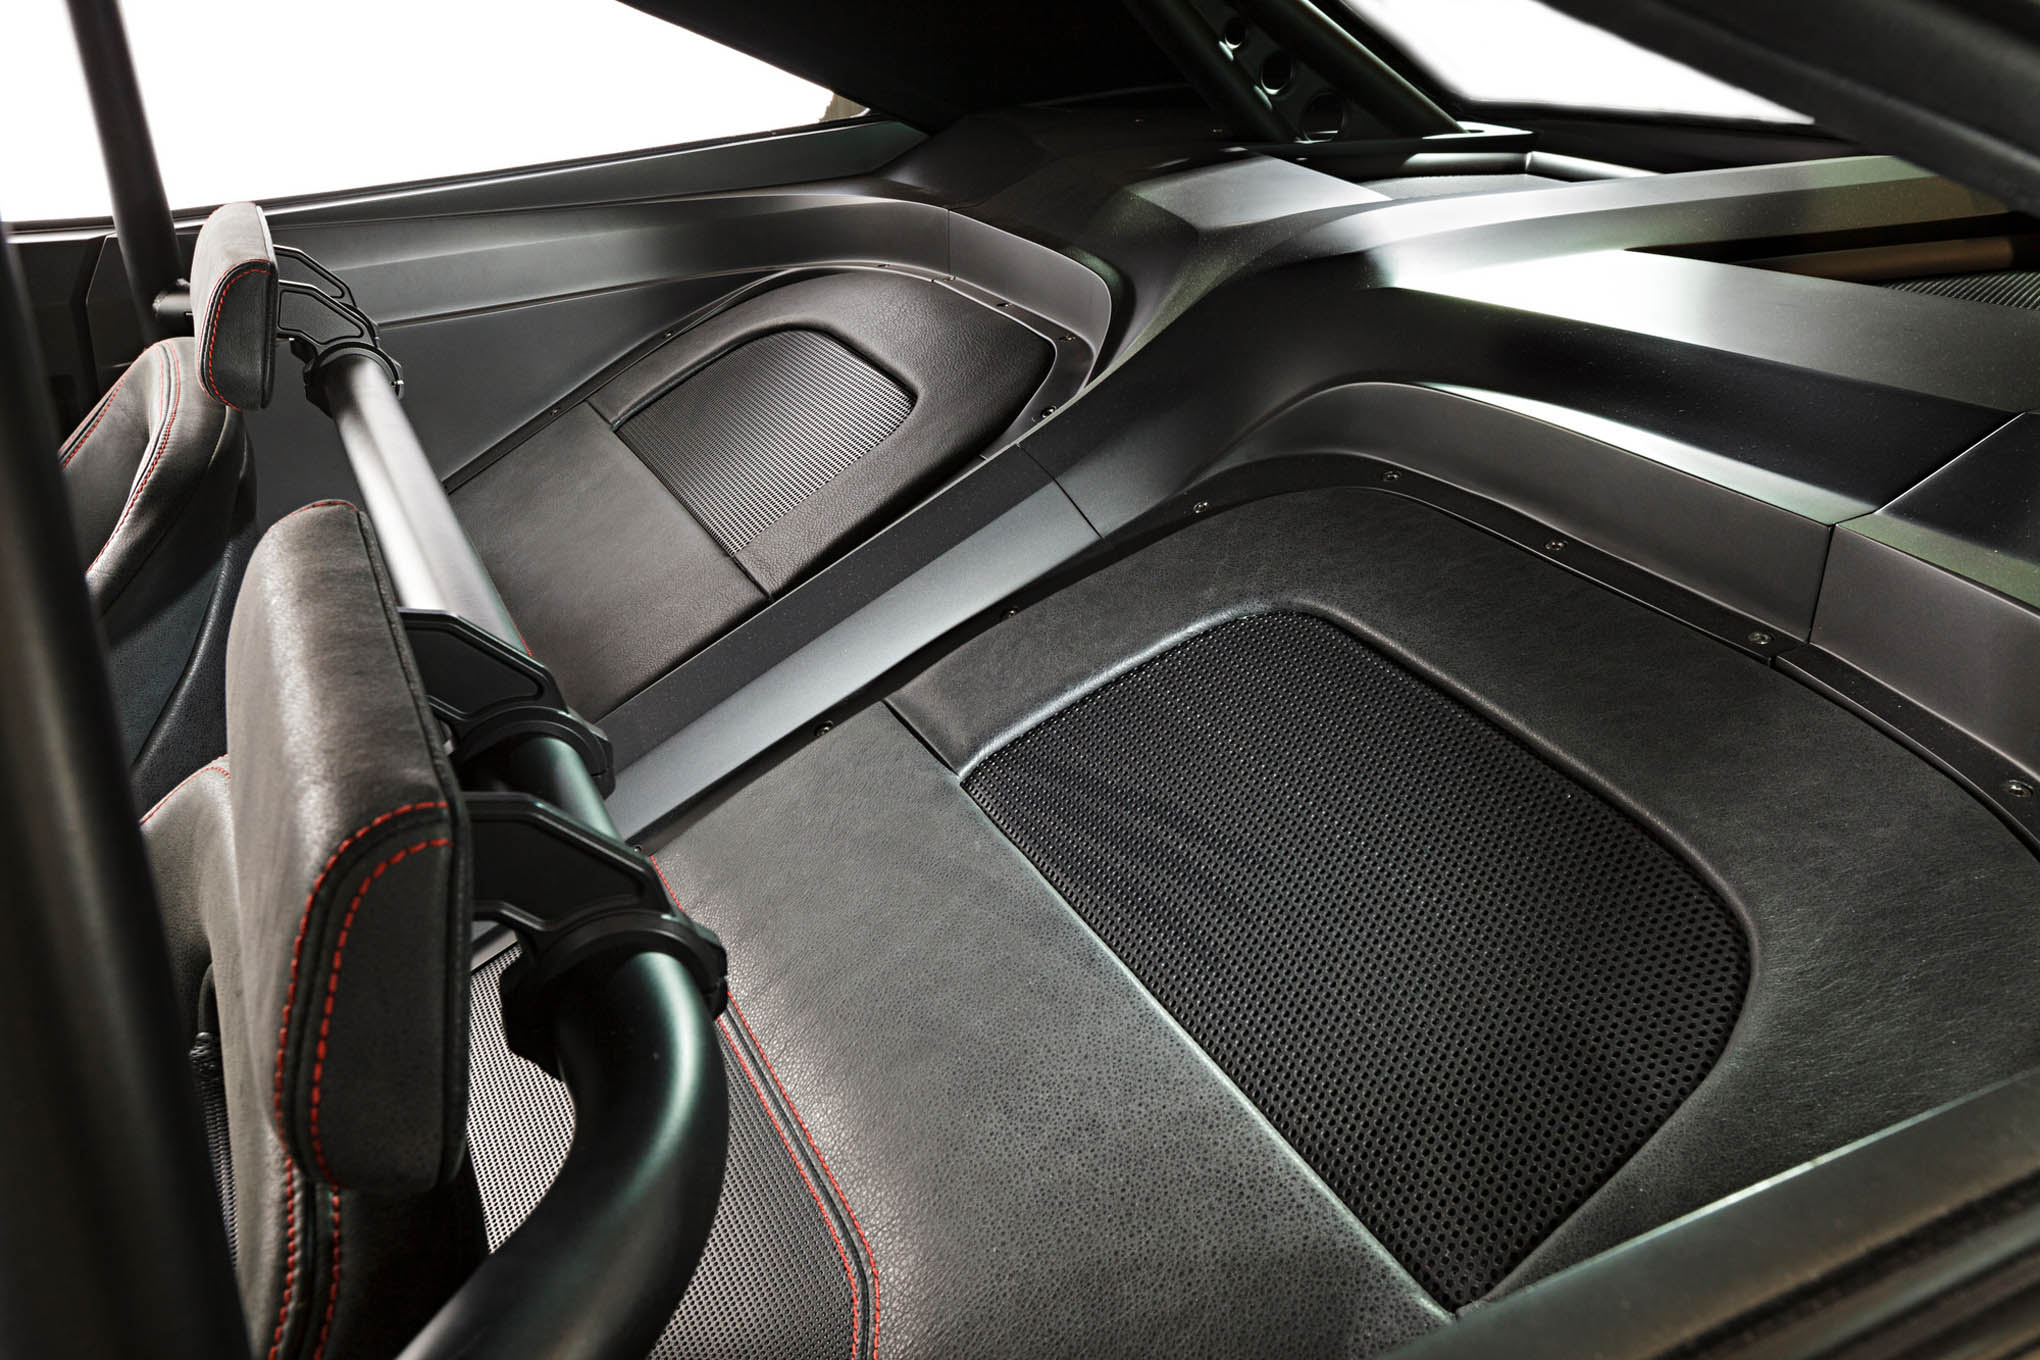 Yes, the rear seats have been eliminated, but check out how the sheetmetal has been created to take this from a dead space to something entertaining to view and how well everything relates and is integrated to everything else around it.